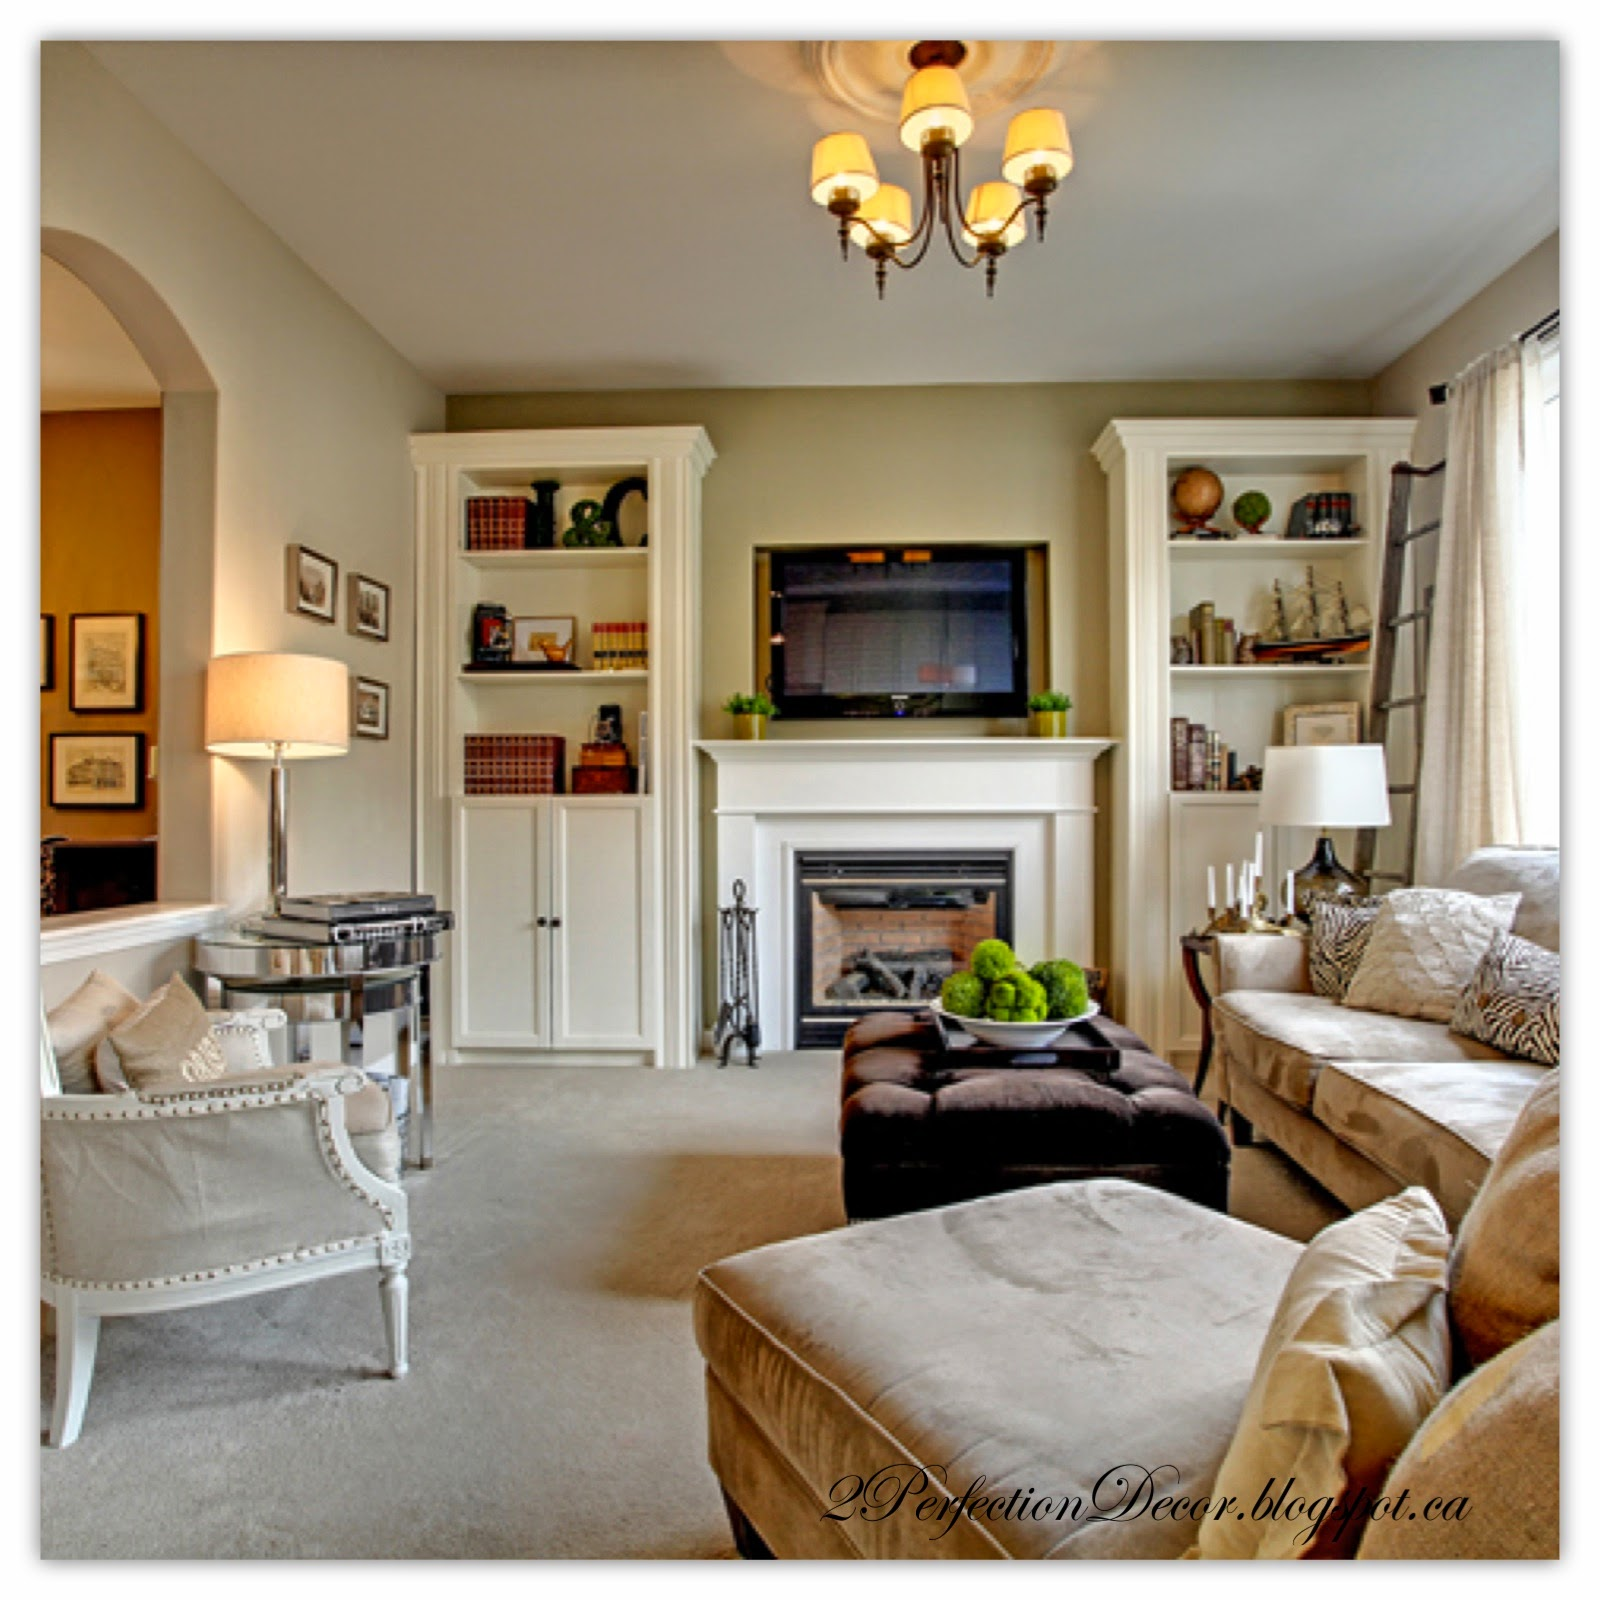 2perfection Decor Built In Bookshelves To Flank Fireplace